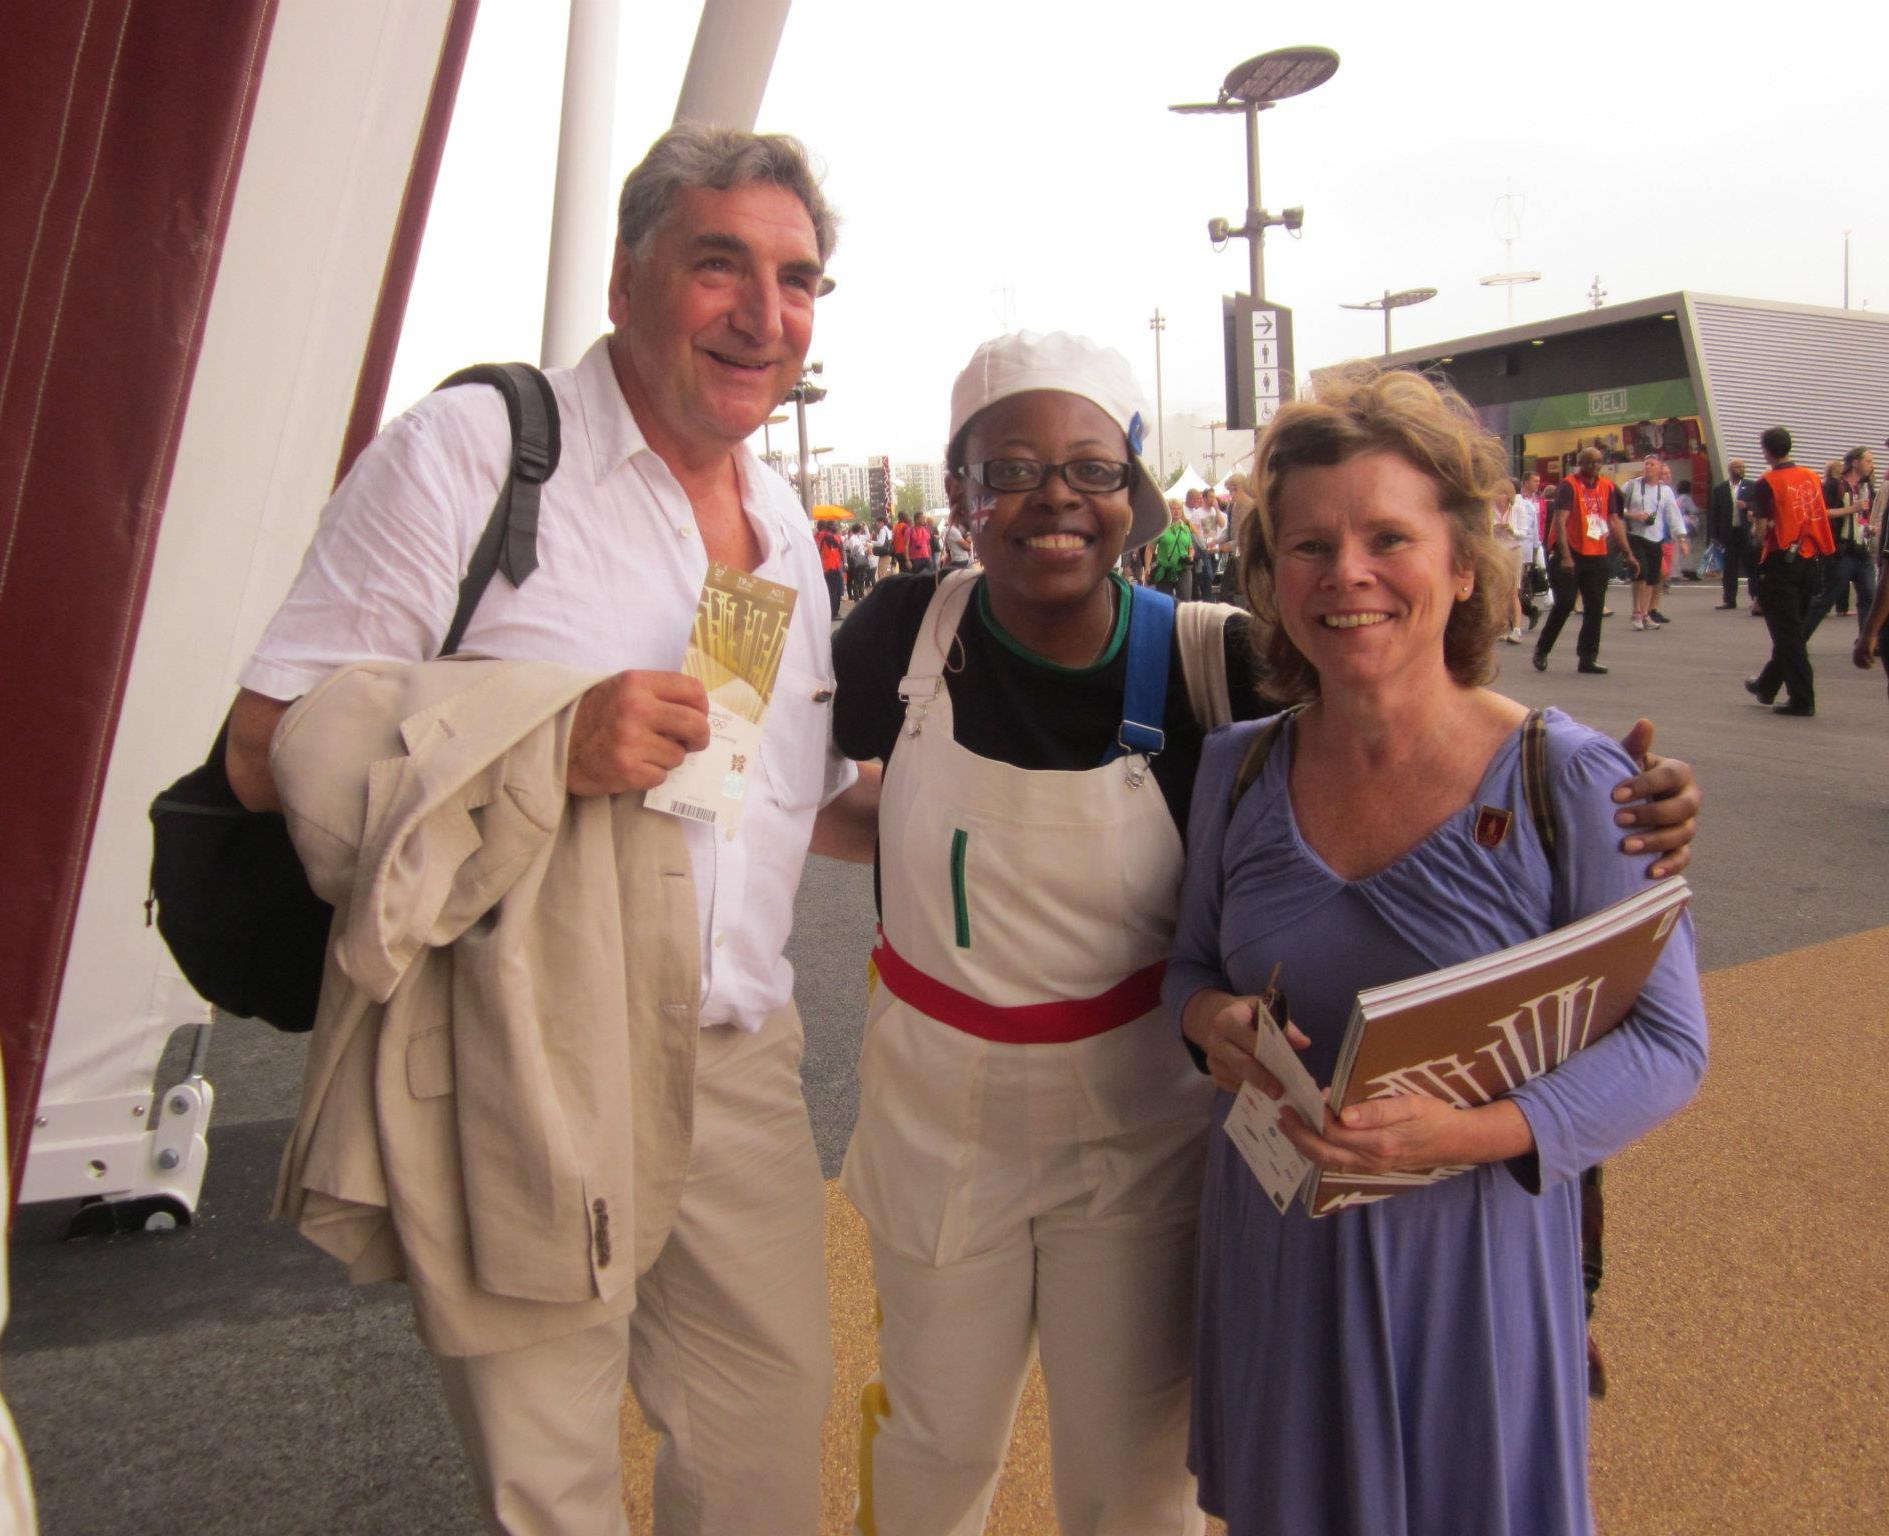 Jim Carter from Downton Abbey & Imelda Stauton from Harry Potter at London 2012. Photo Credit: Ursula Petula Barzey.